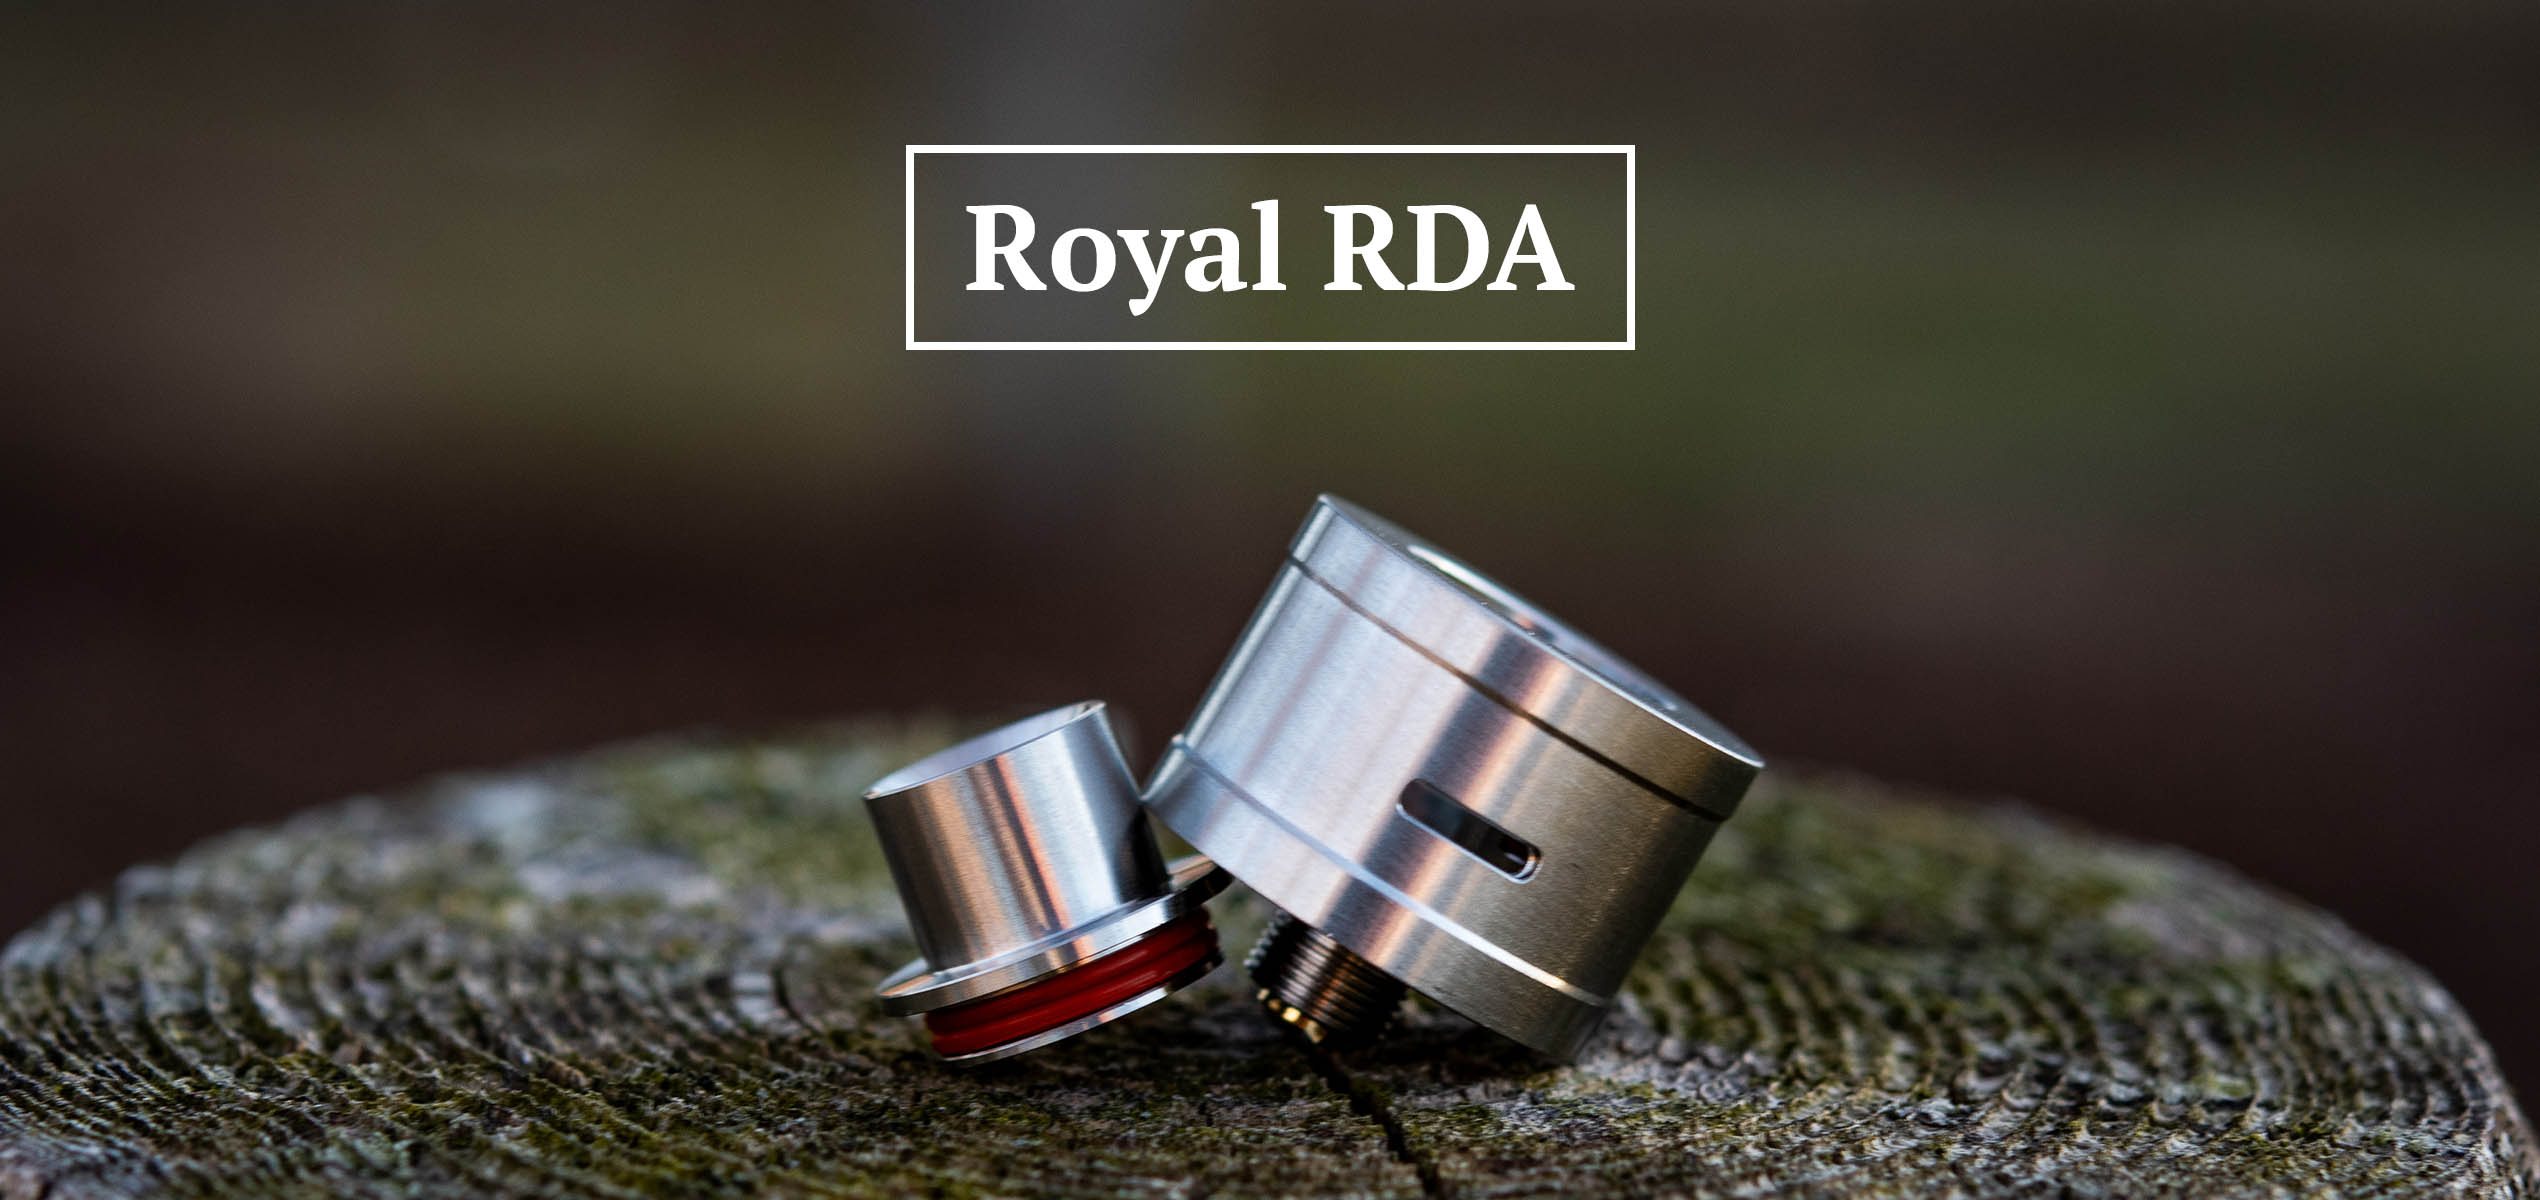 Royal RDA